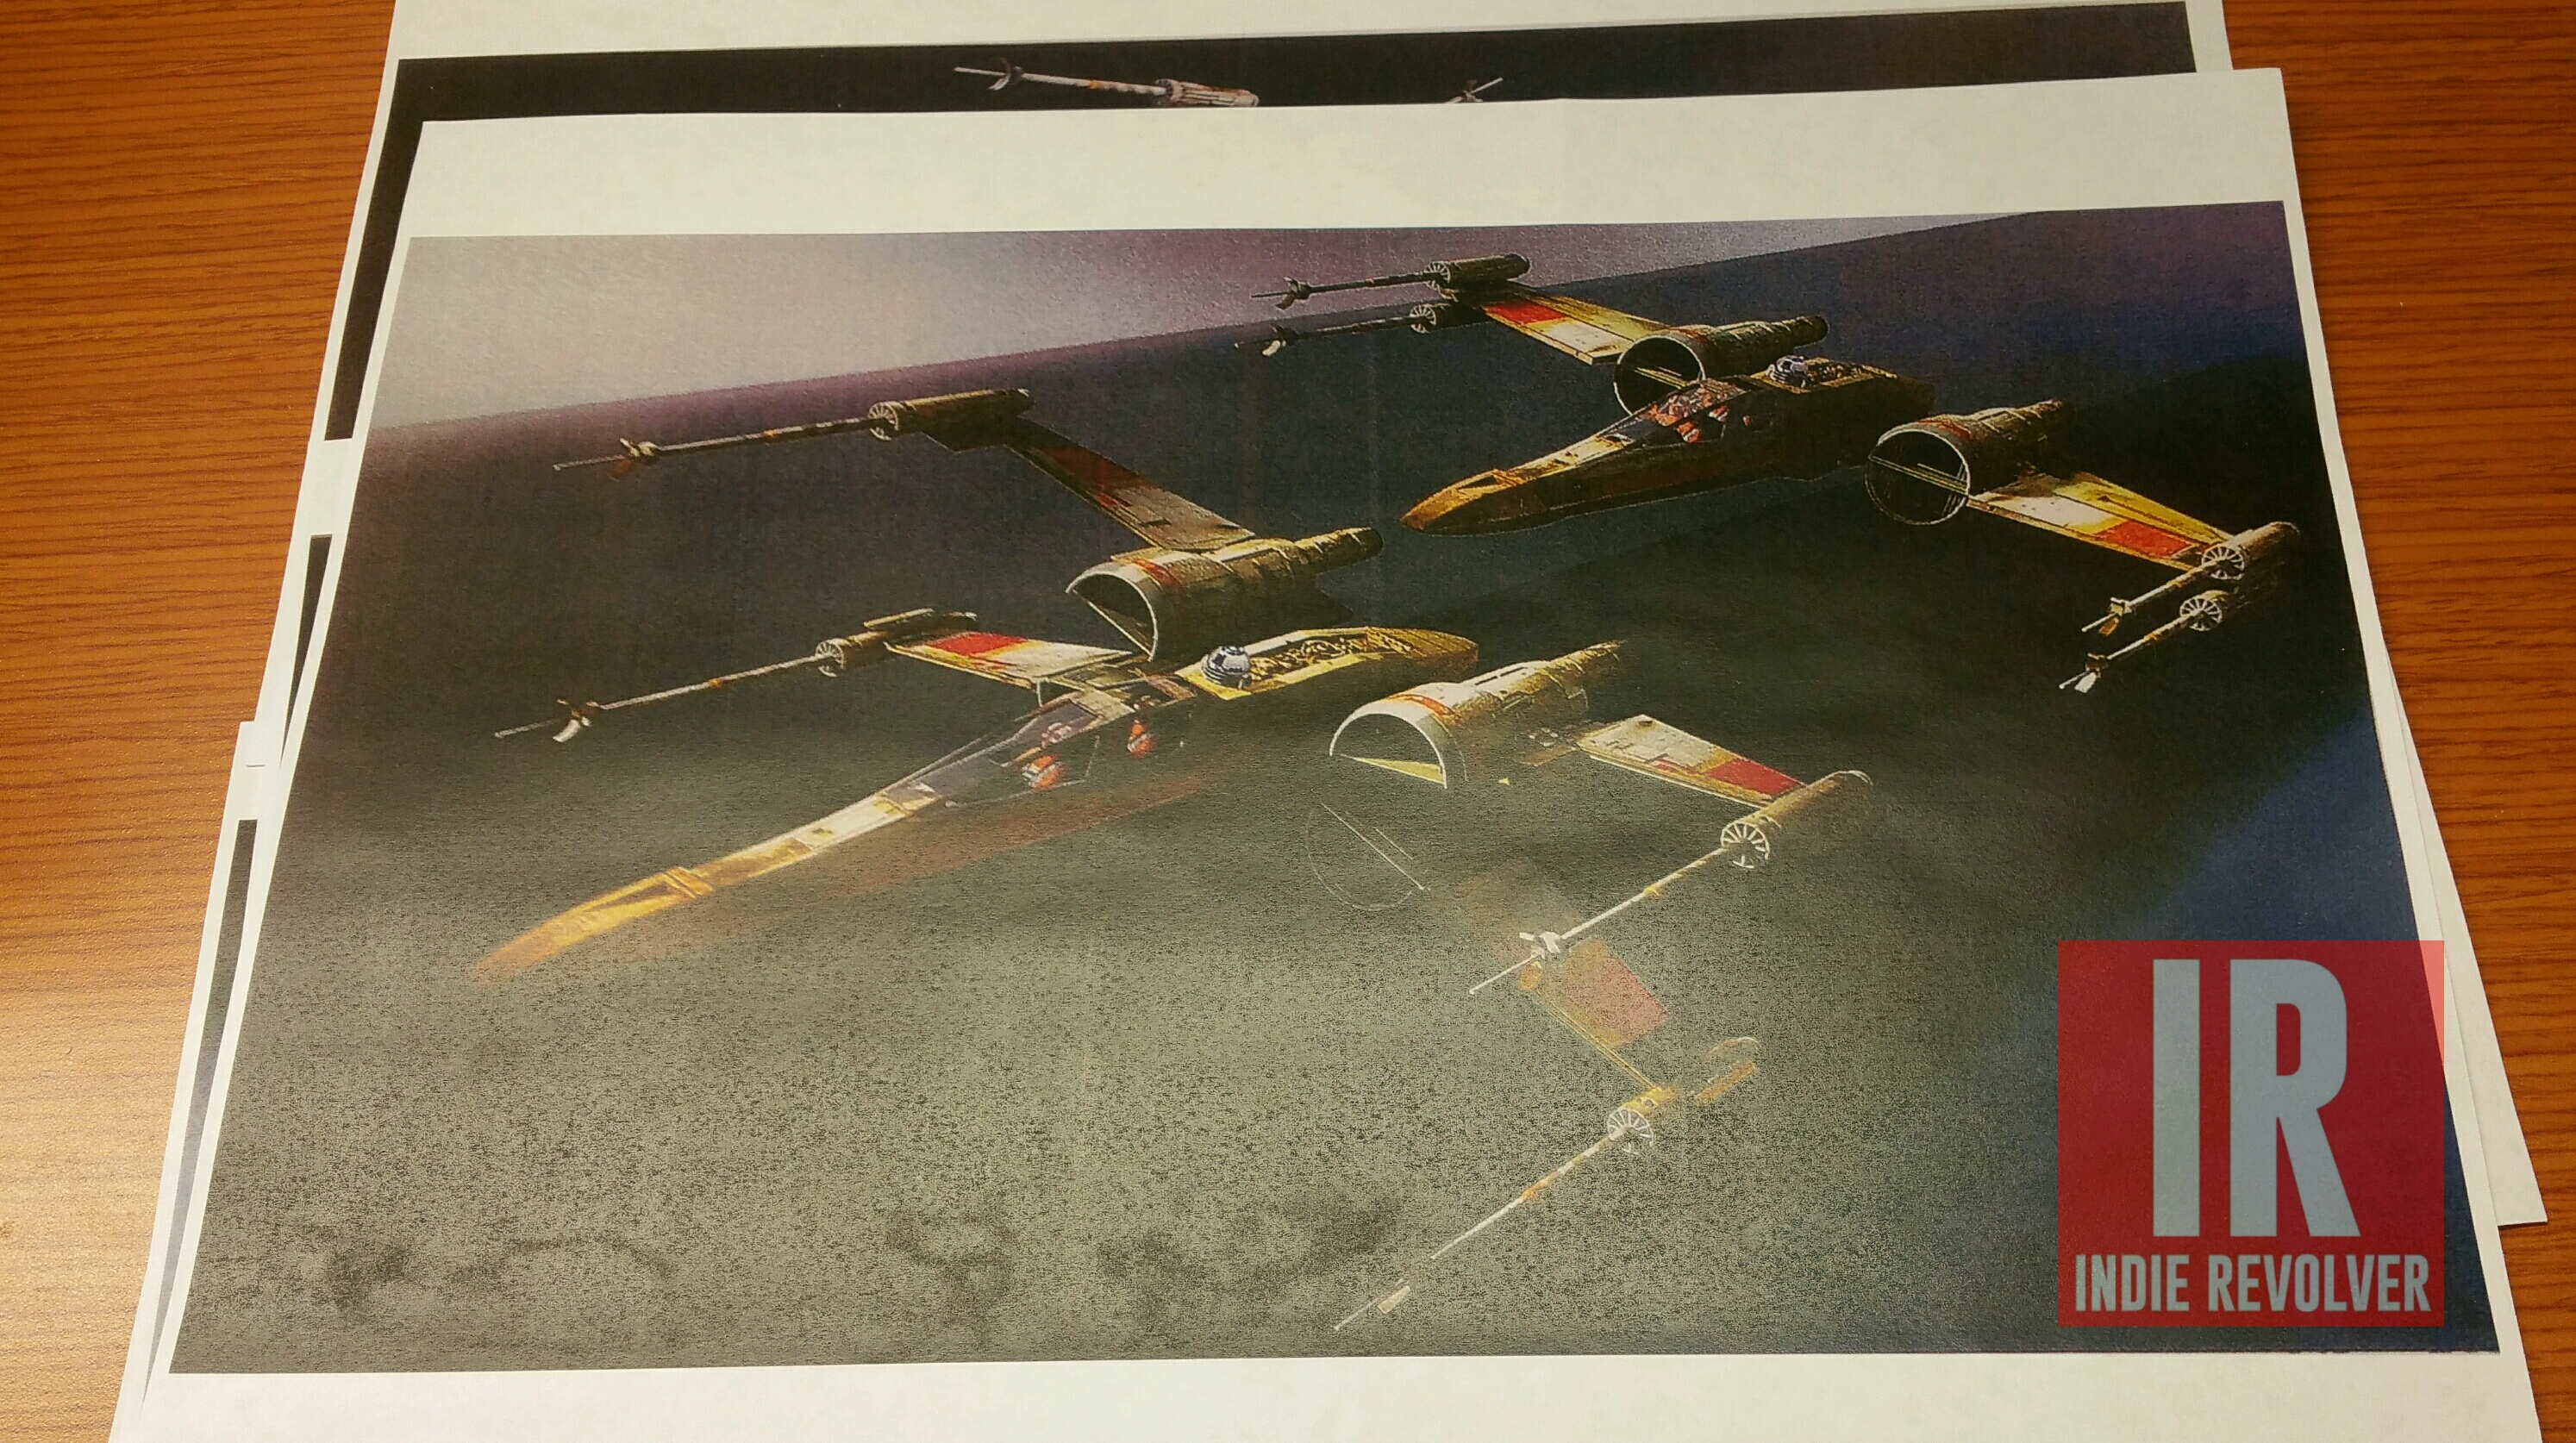 'Star Wars: The Force Awakens' Concept Art Showcases Ships of the Resistance